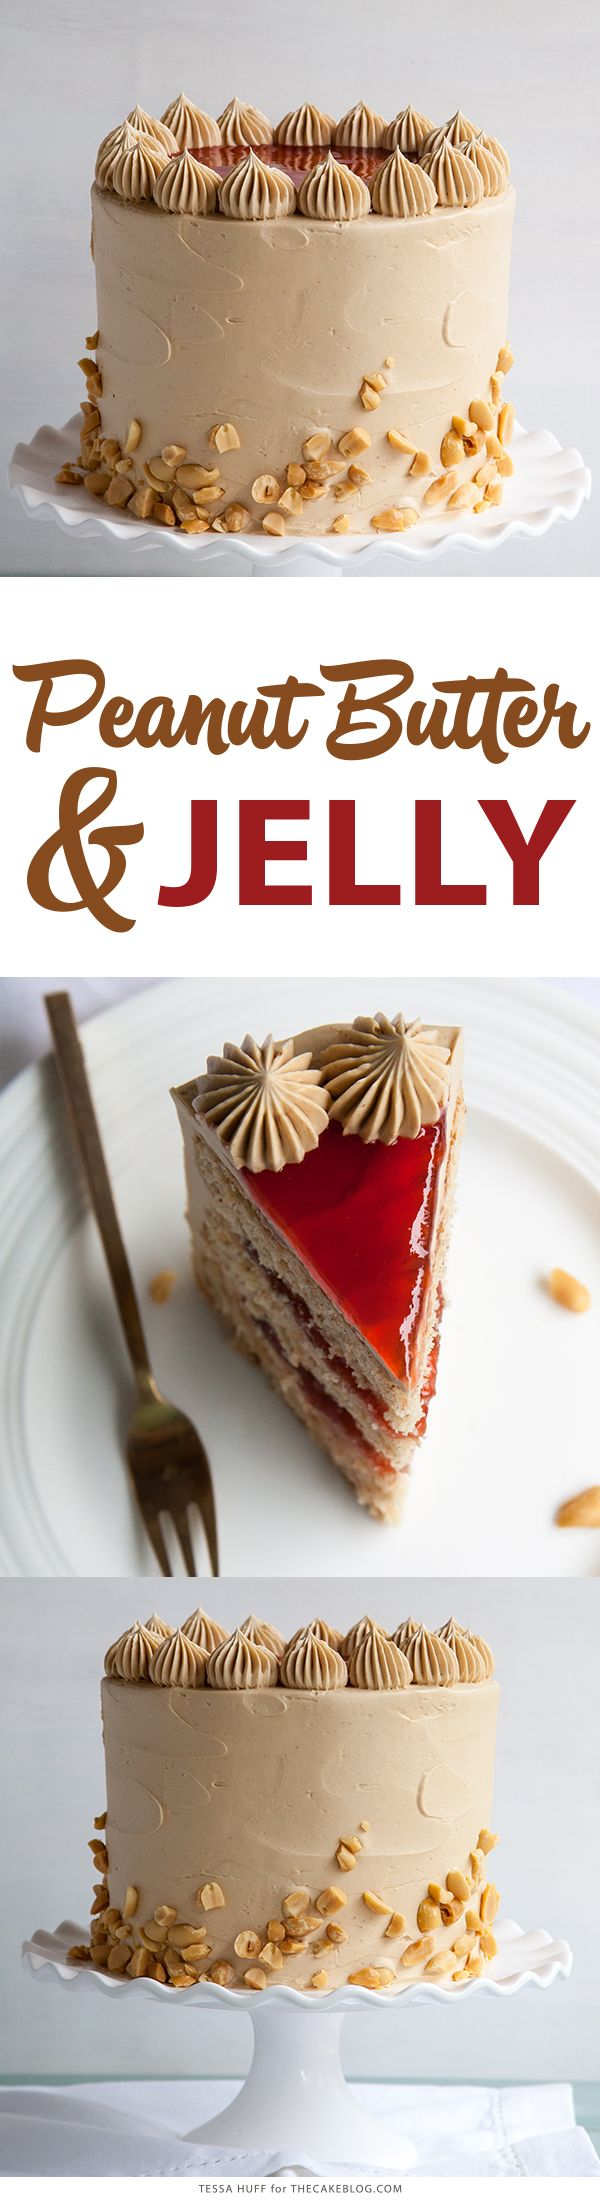 Peanut Butter and Jelly Cake - Peanut butter cake with brown sugar peanut butter frosting, strawberry jam and chopped peanuts.